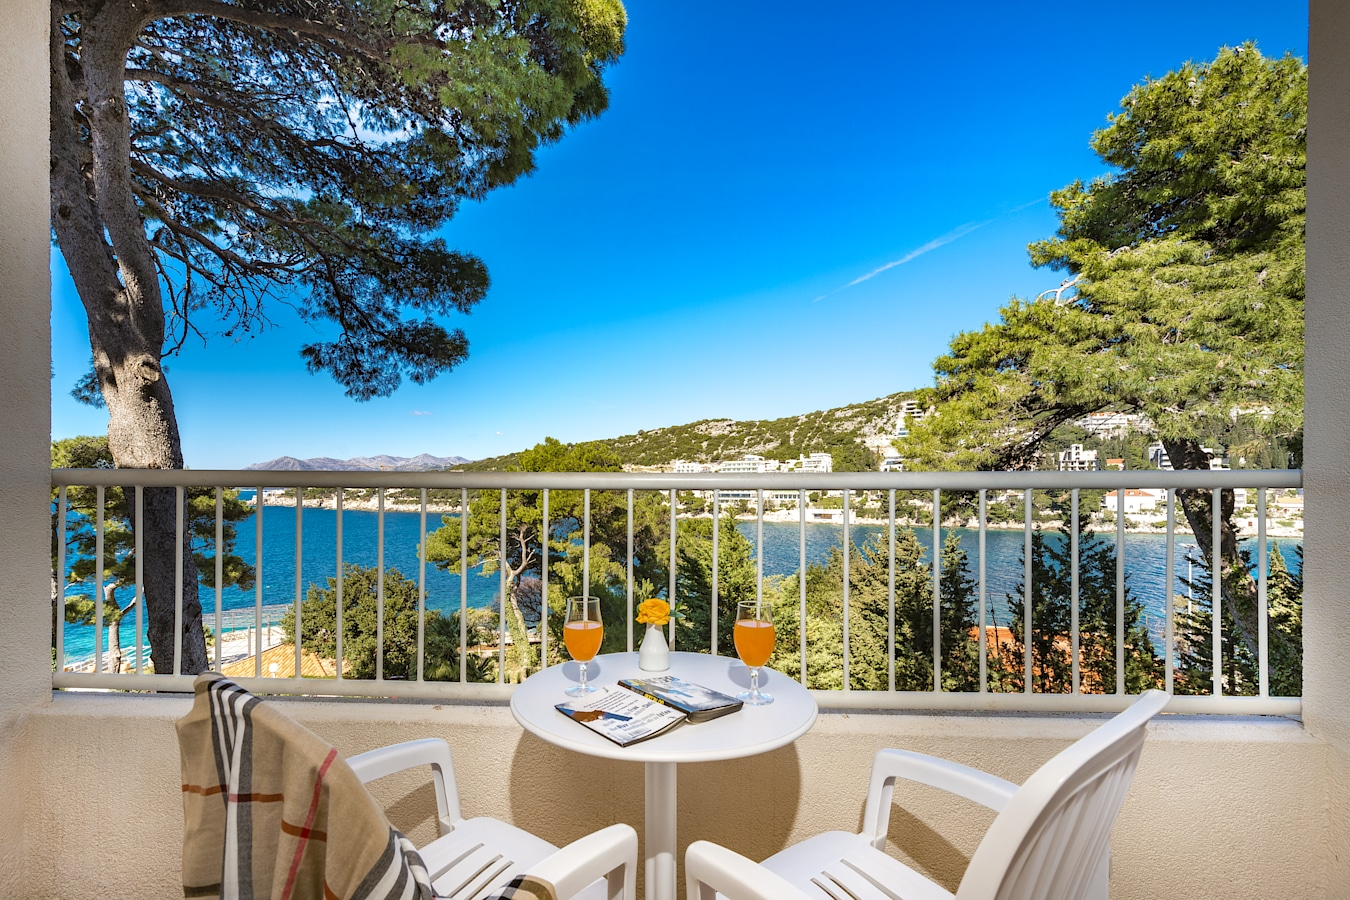 splendid-hotel-dubrovnik-balcony-sea-view.jpg